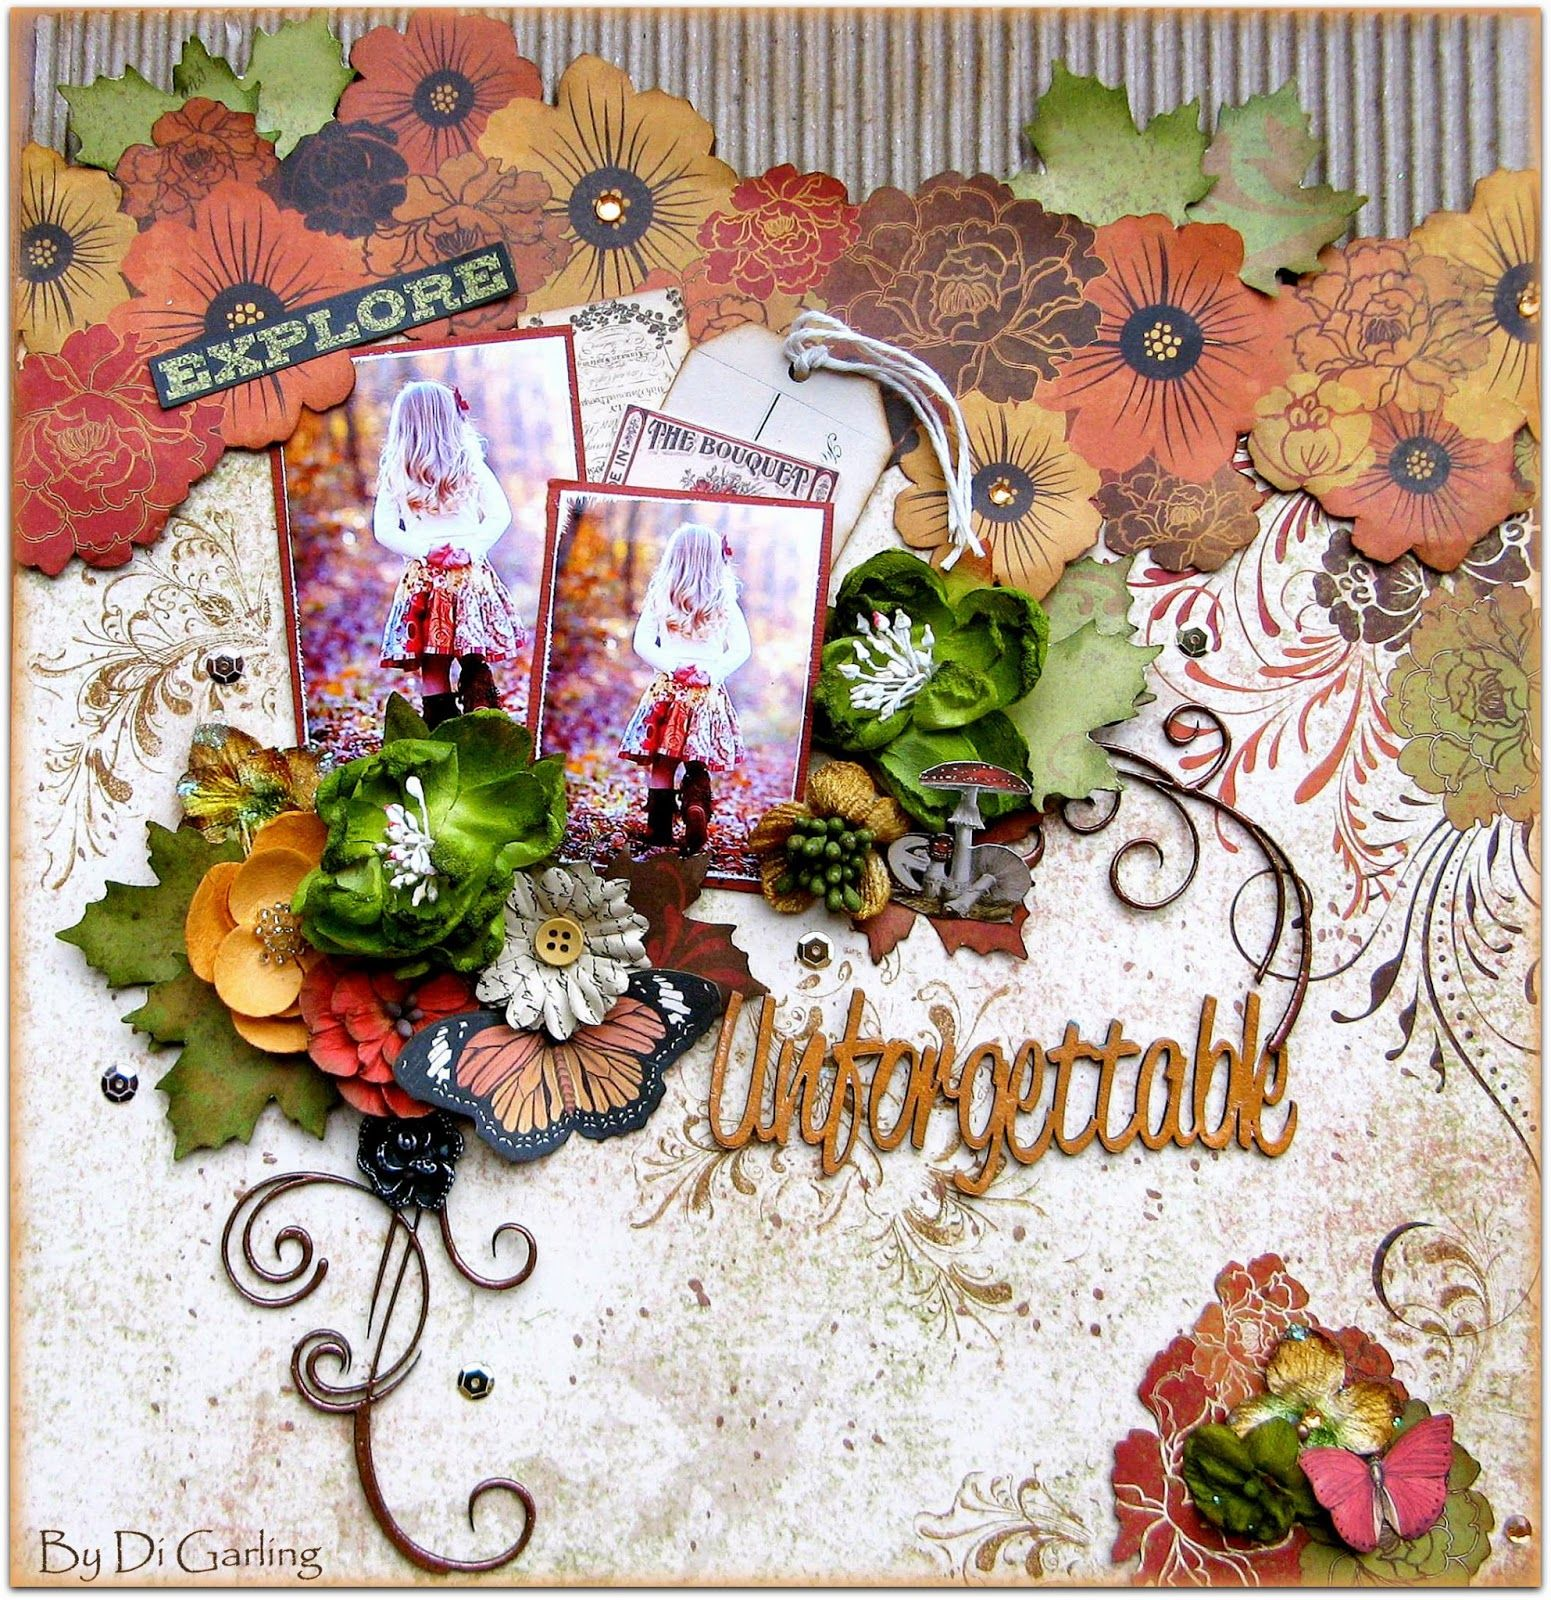 """Di's Creative Space: My Scraps of Darkness Kit ClubDT Reveal - Part One""""Unforgettable"""" by Di Garling"""